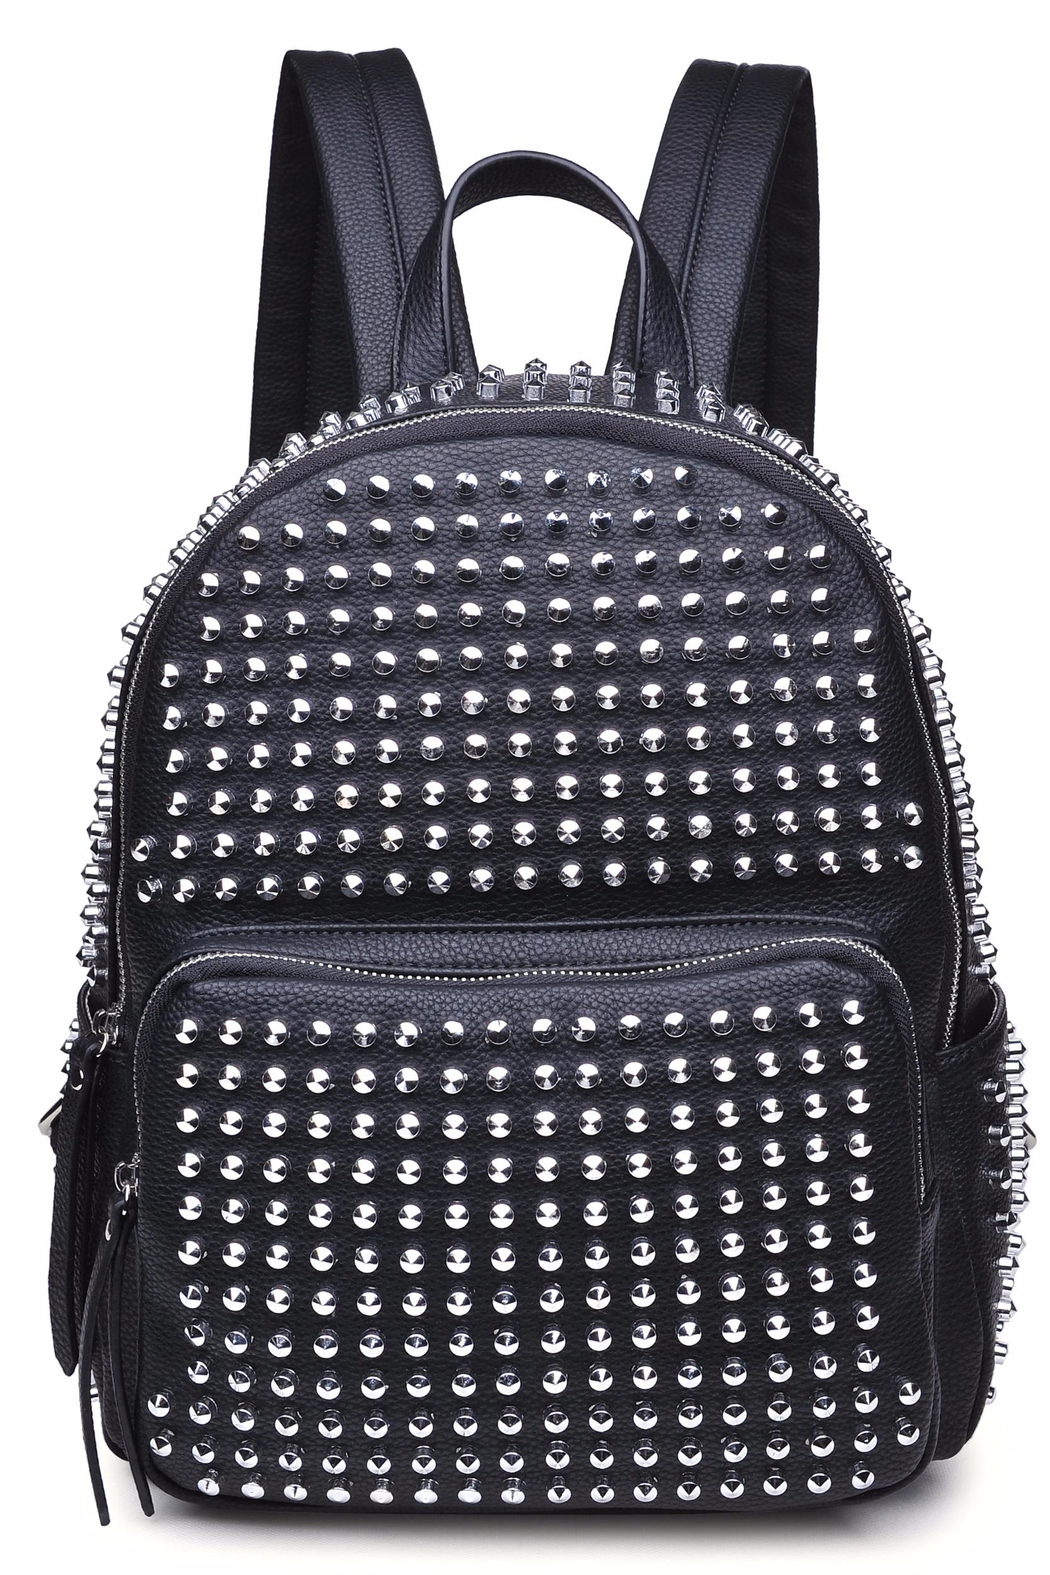 Urban Expressions Cosmos Studded Backpack - Main Image